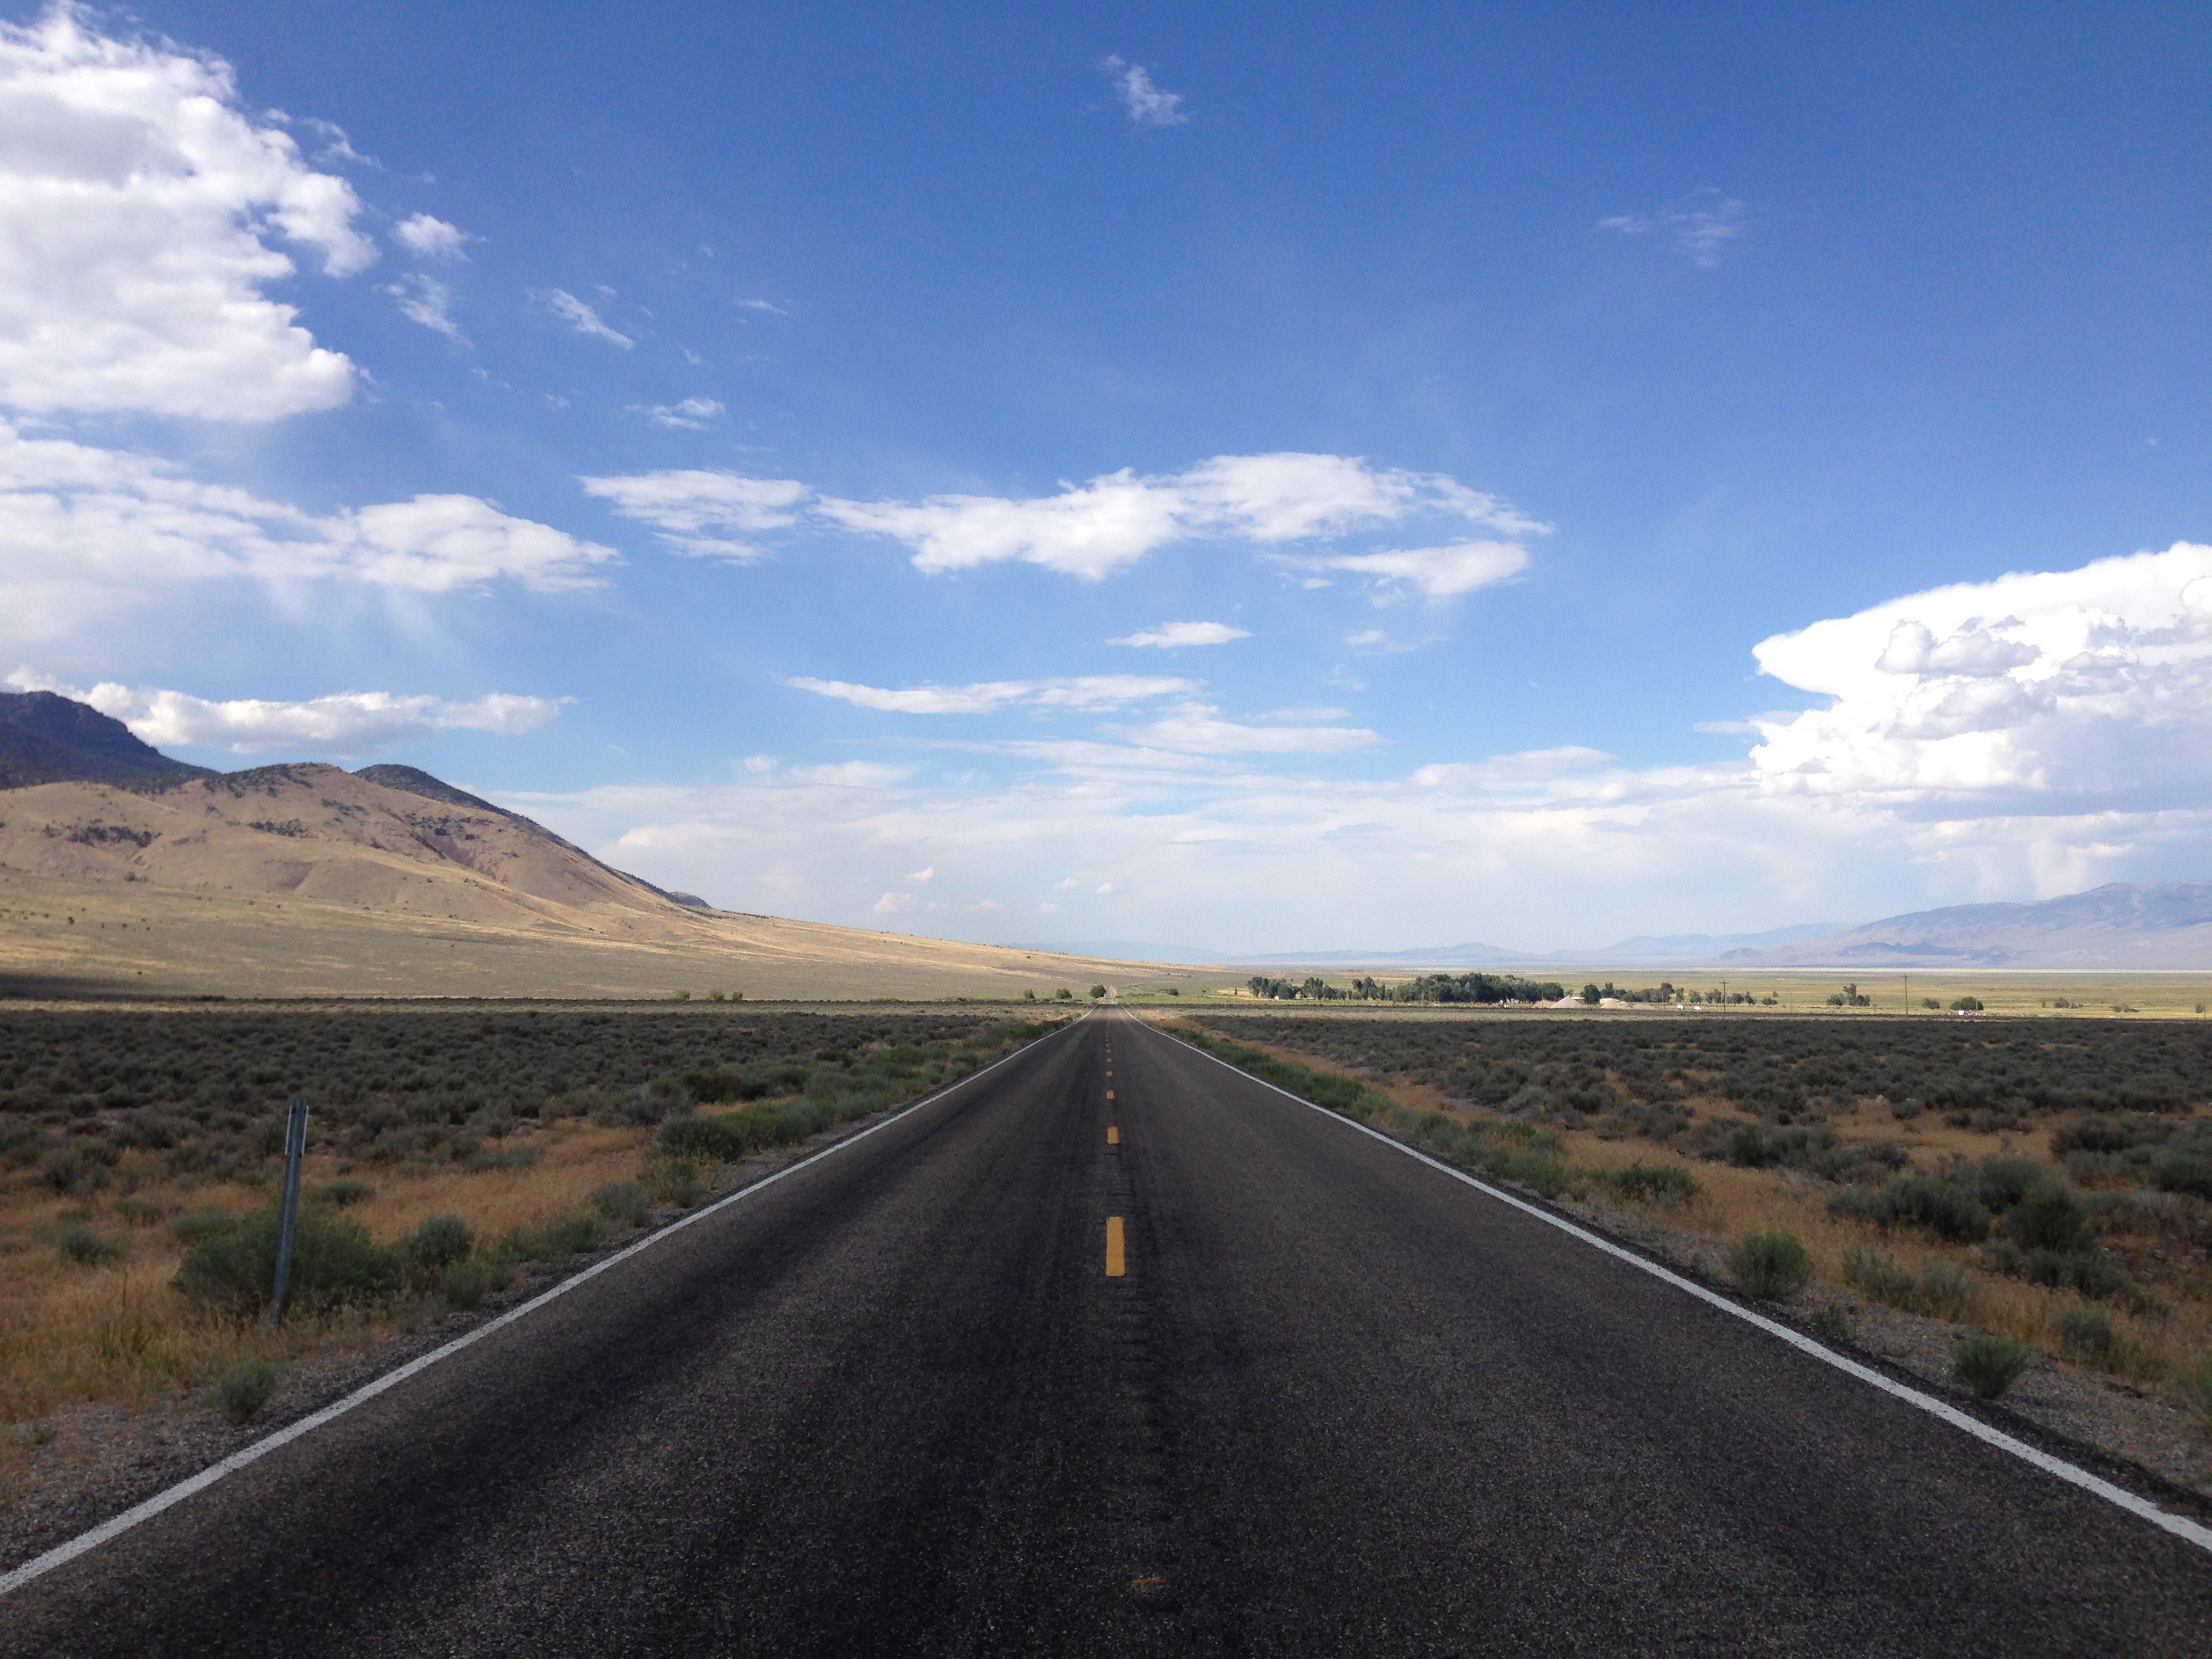 File:2014-08-09 16 19 18 View north along Nevada State ...